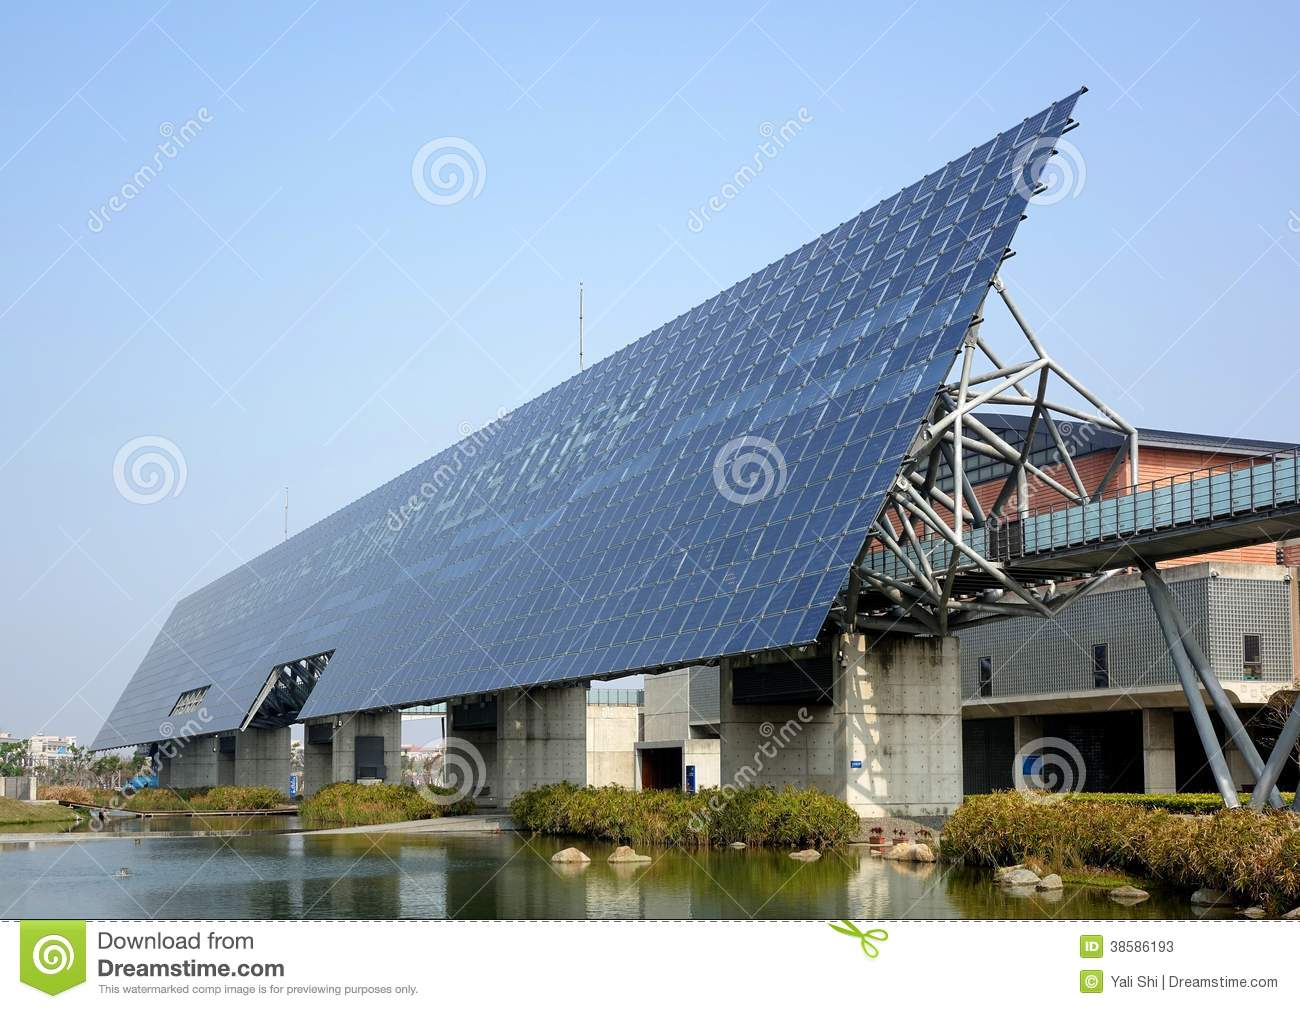 Solar Panel Wall >> Giant Solar Panel Wall In Taiwan Editorial Stock Photo Image Of